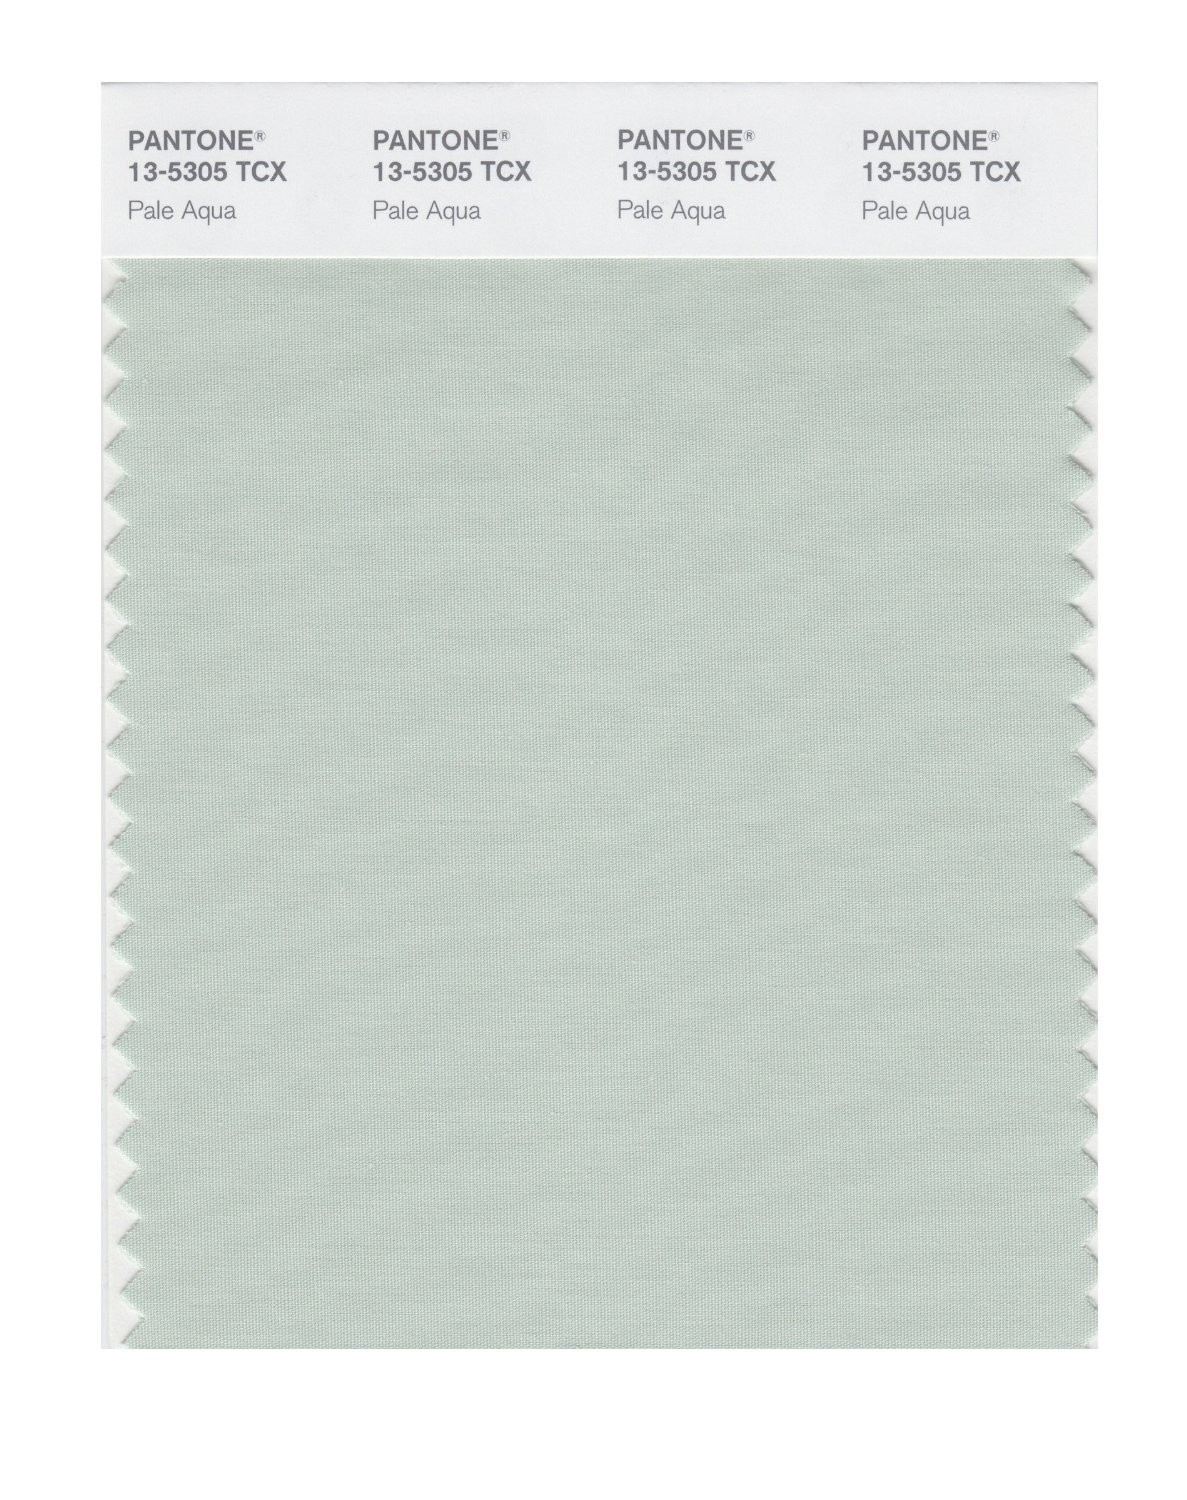 Pantone 13-5305 TCX Swatch Card Pale Aqua